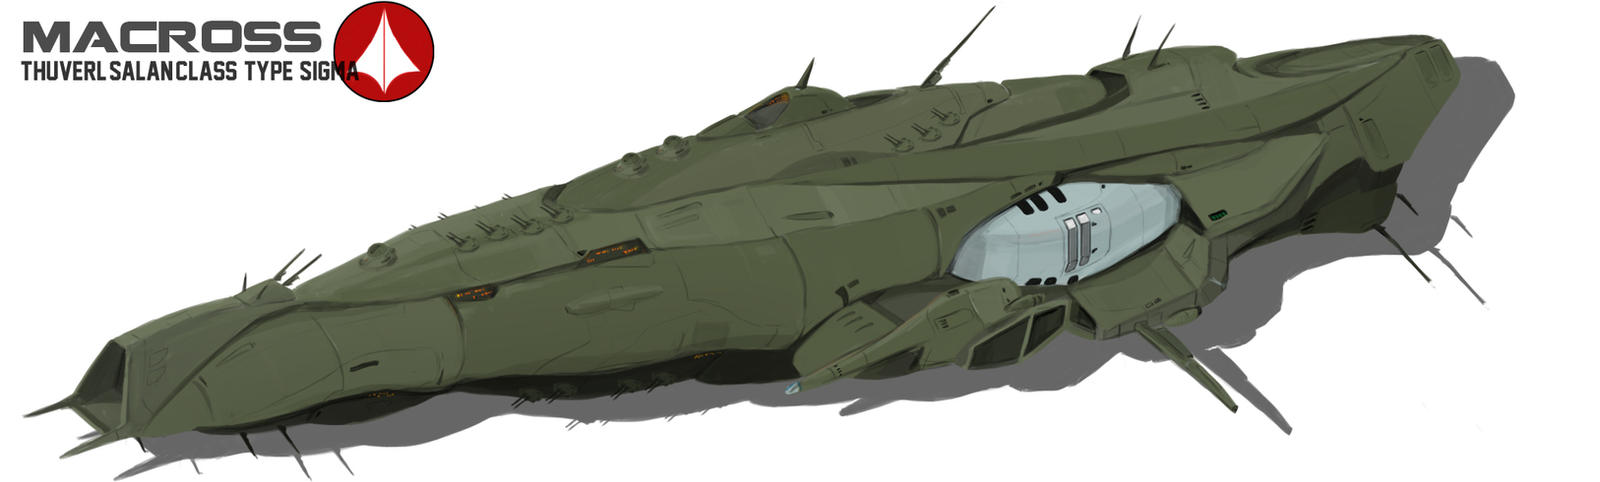 Thuverl-Salan-class Type Sigma destroyer by Shoguneagle